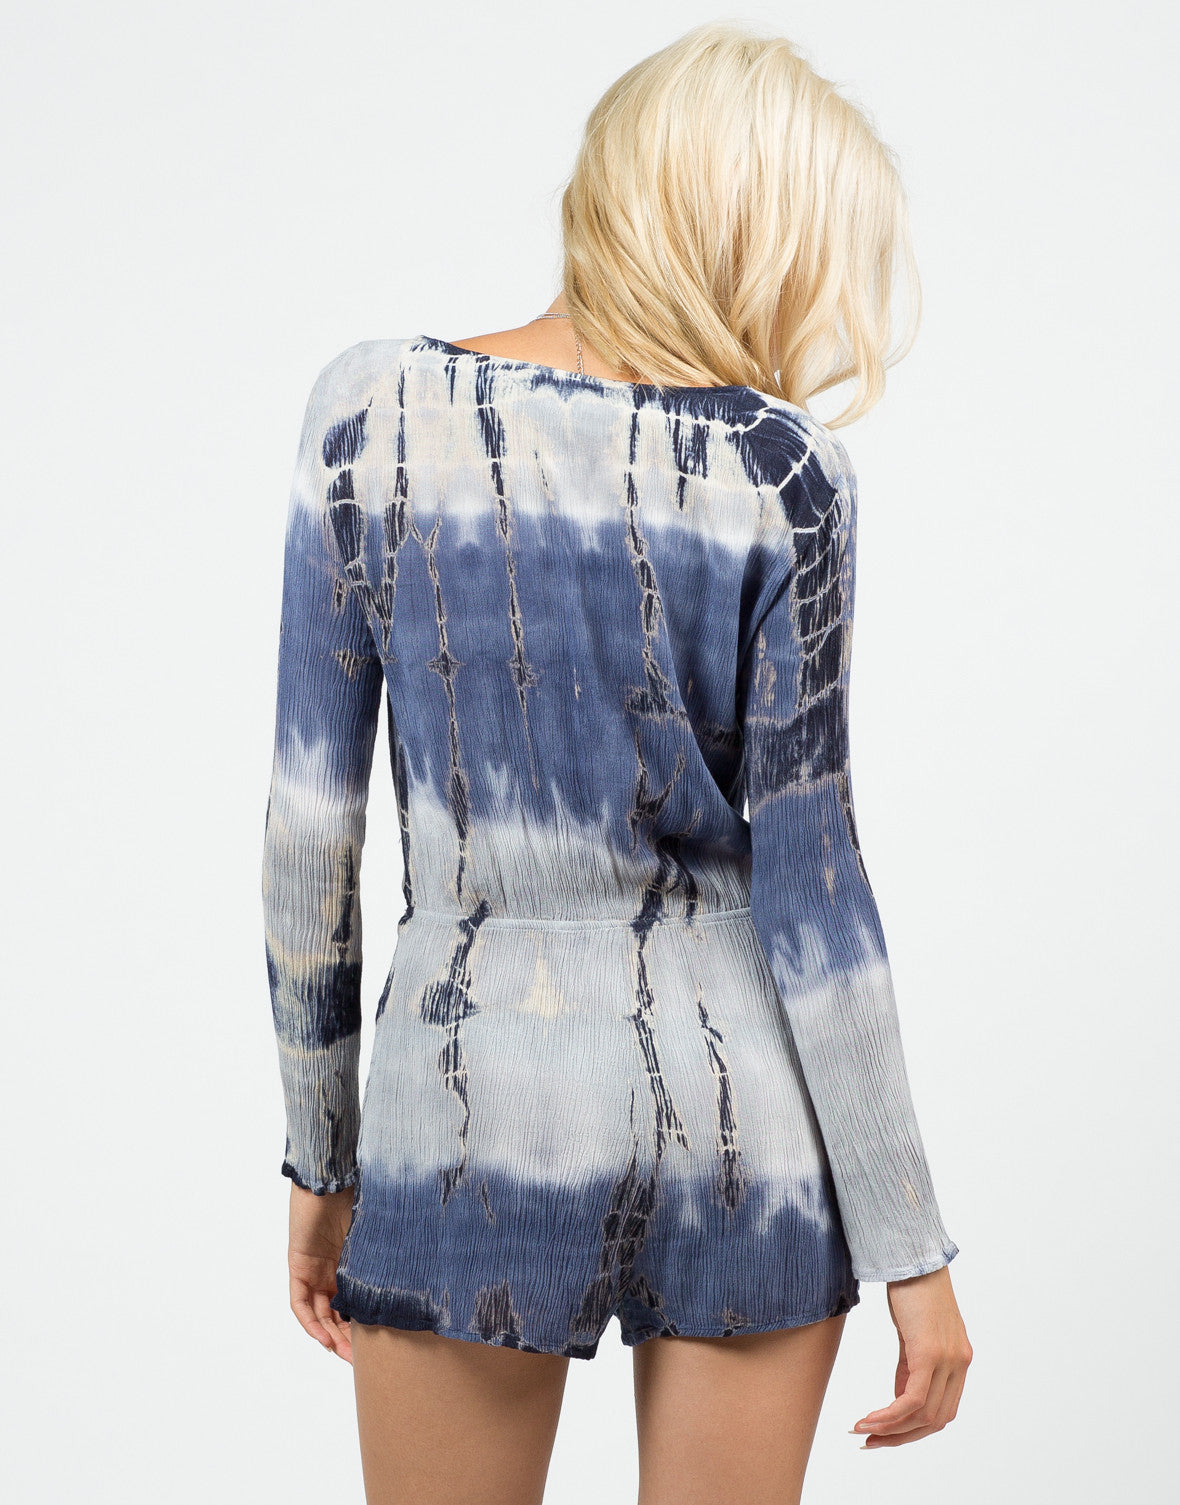 Back View of Tie-Dye Gauze Romper